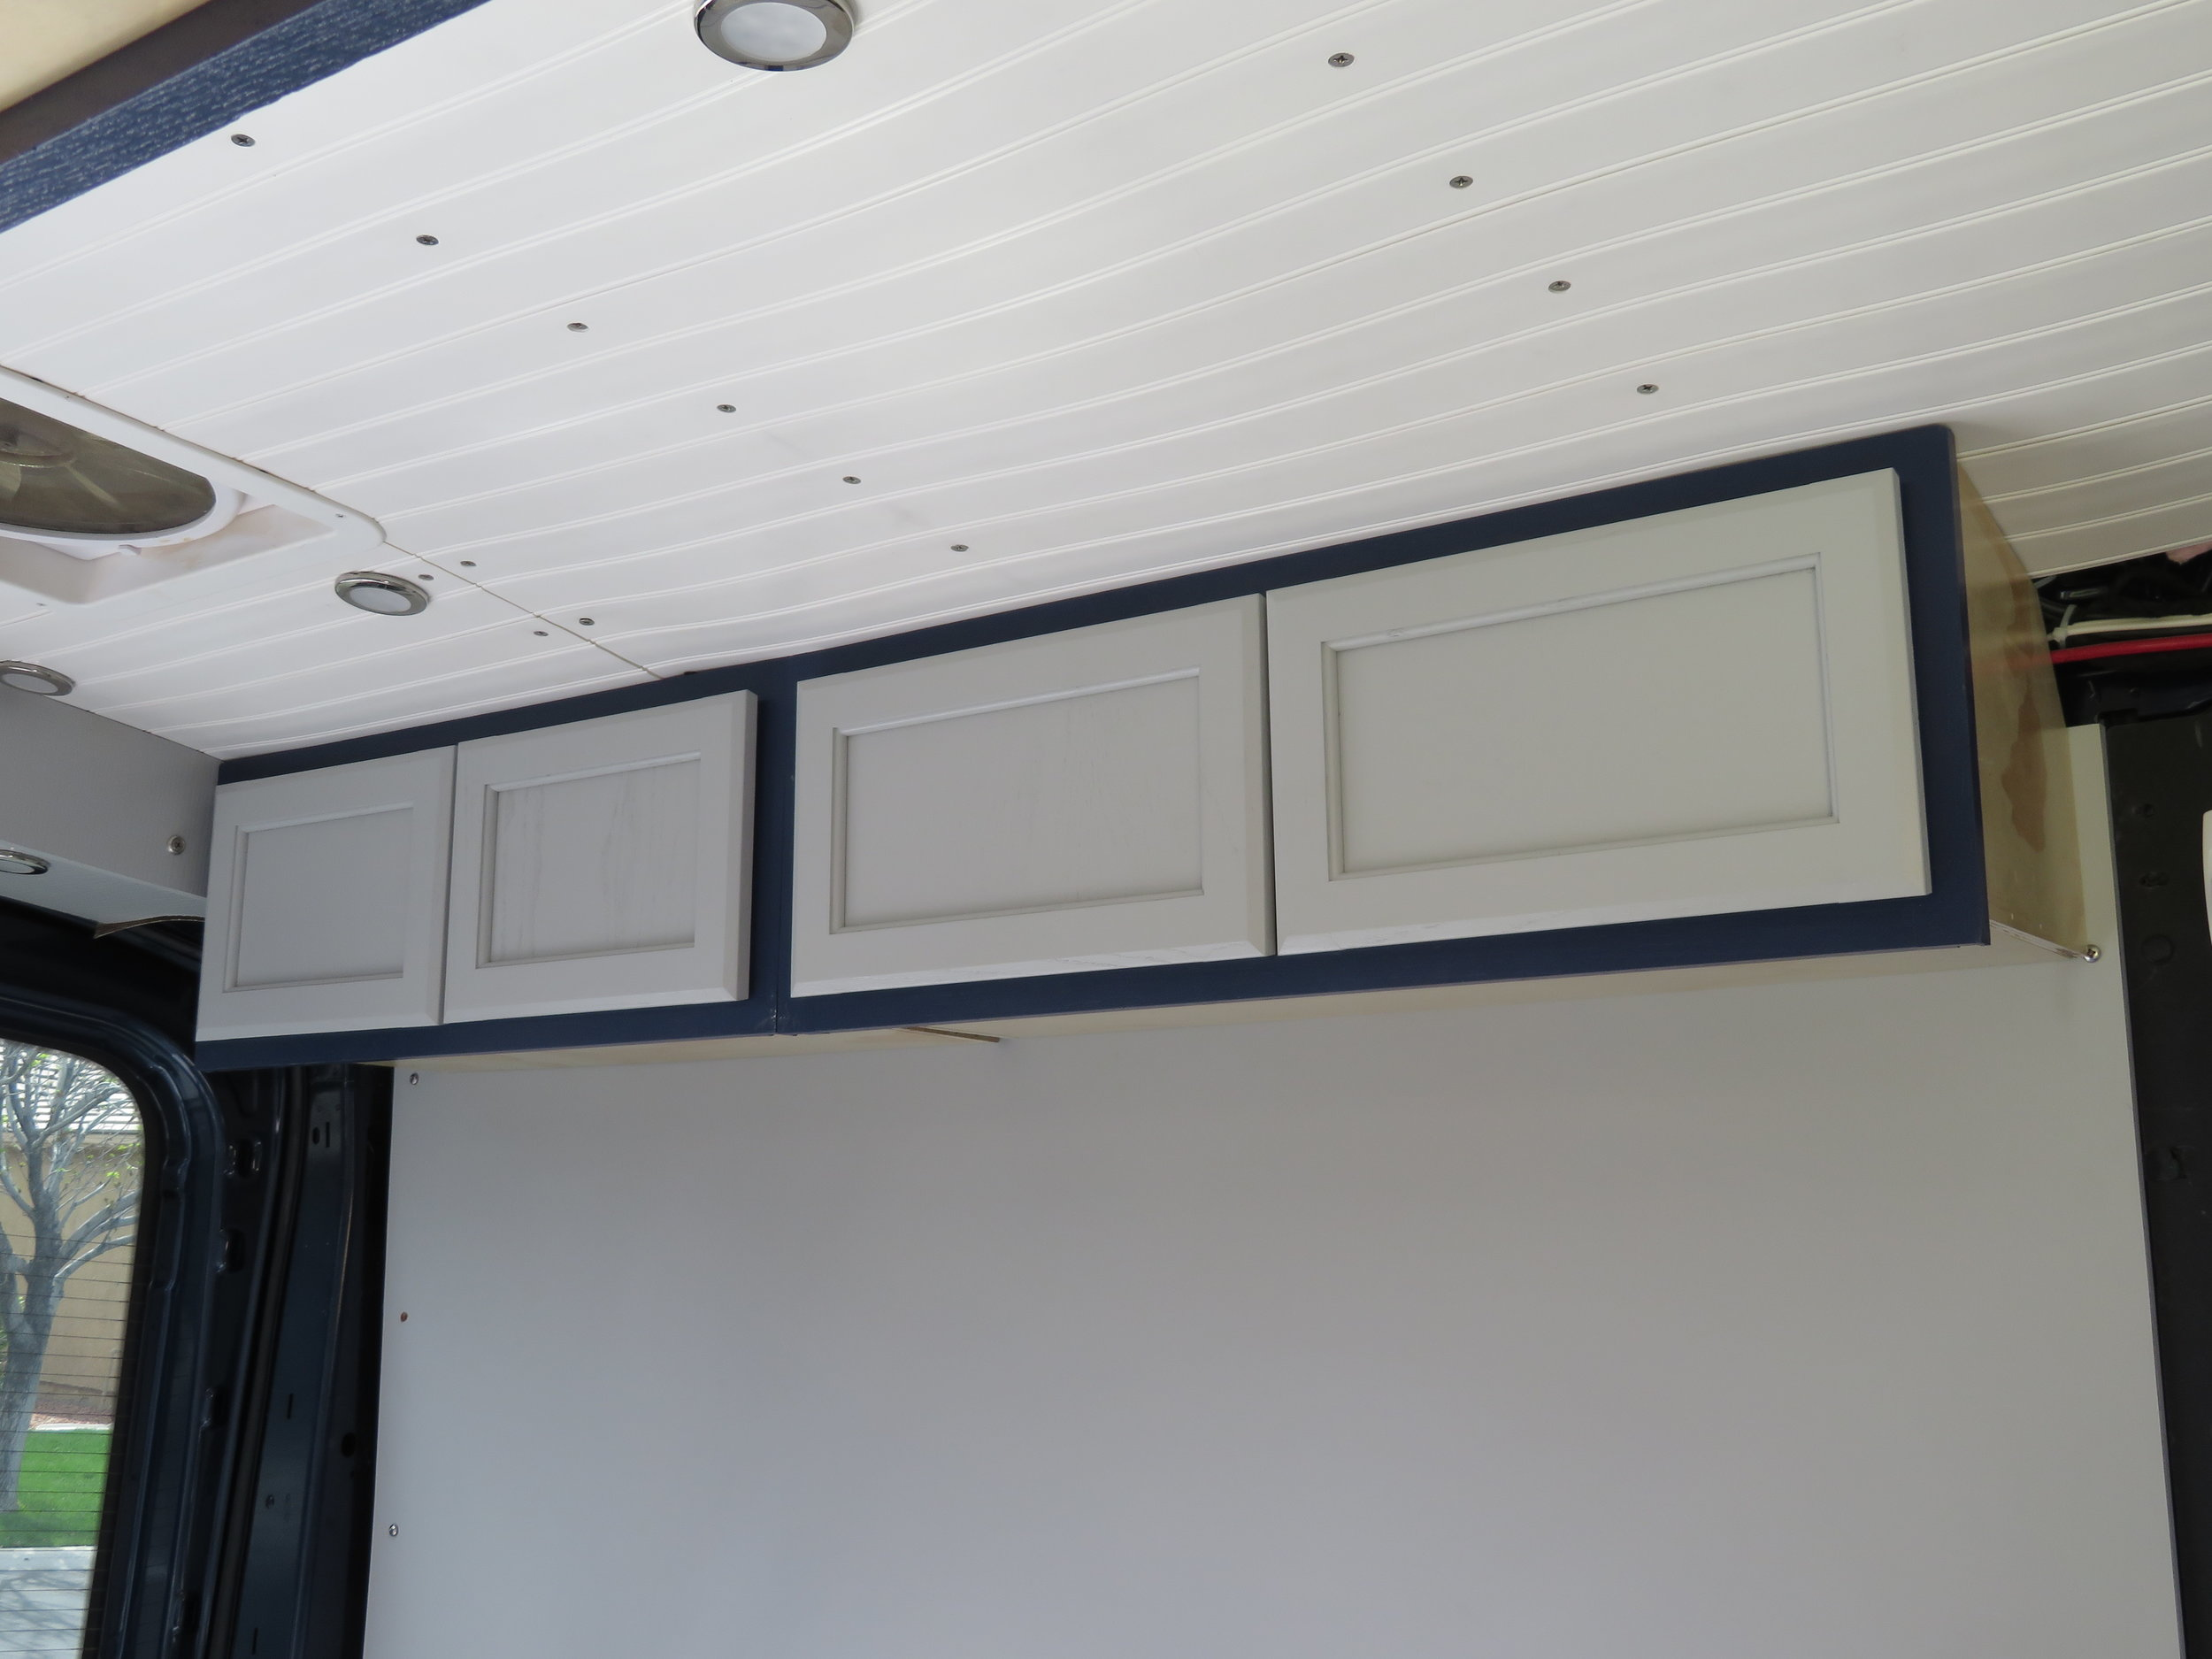 At last - some cabinets